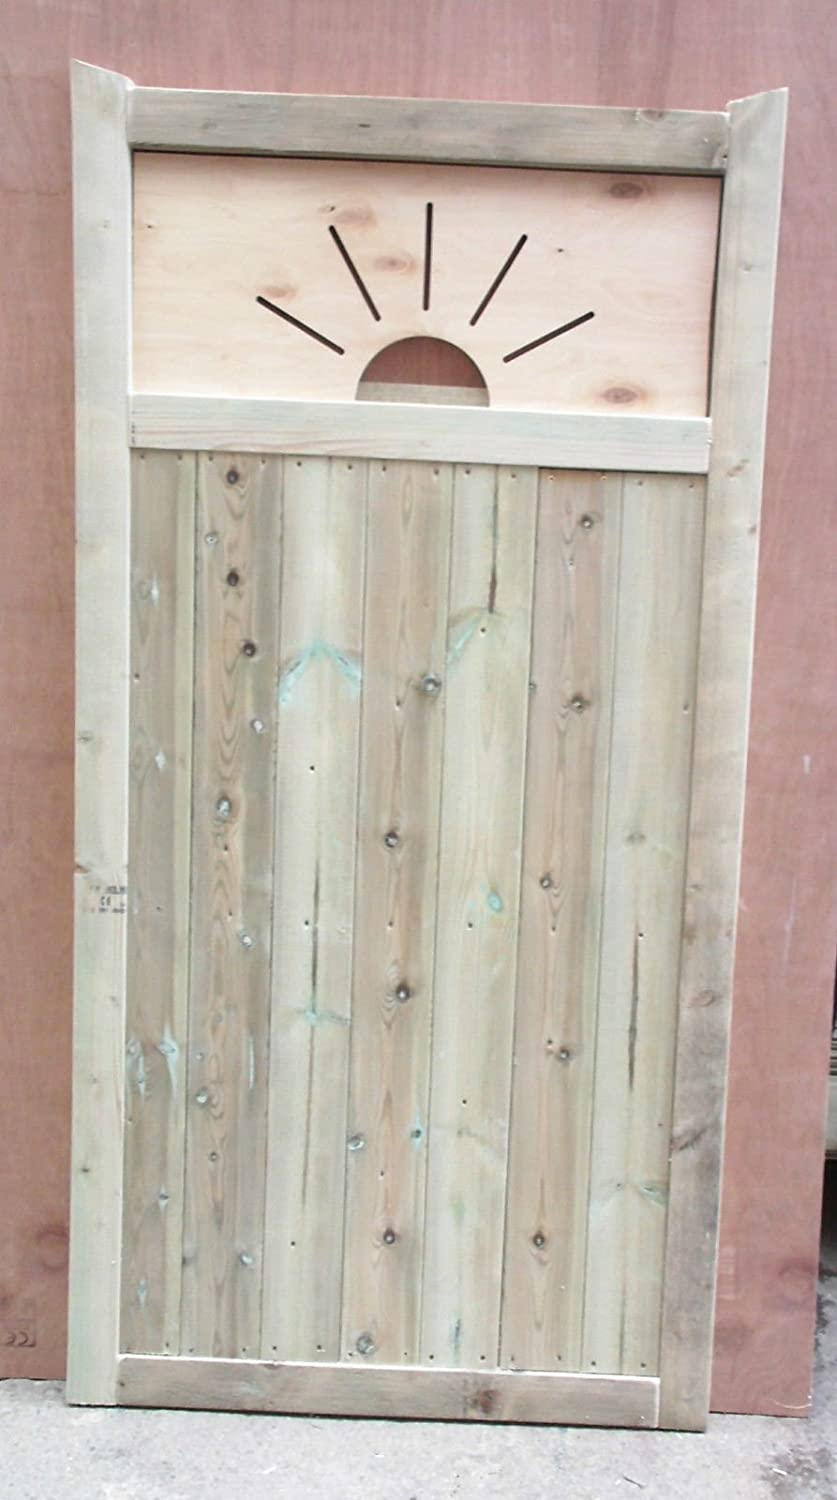 x 180cm W D Smileswoodcraft Wooden Garden Gate Made With Your House Number cut out H x 5cm 91cm